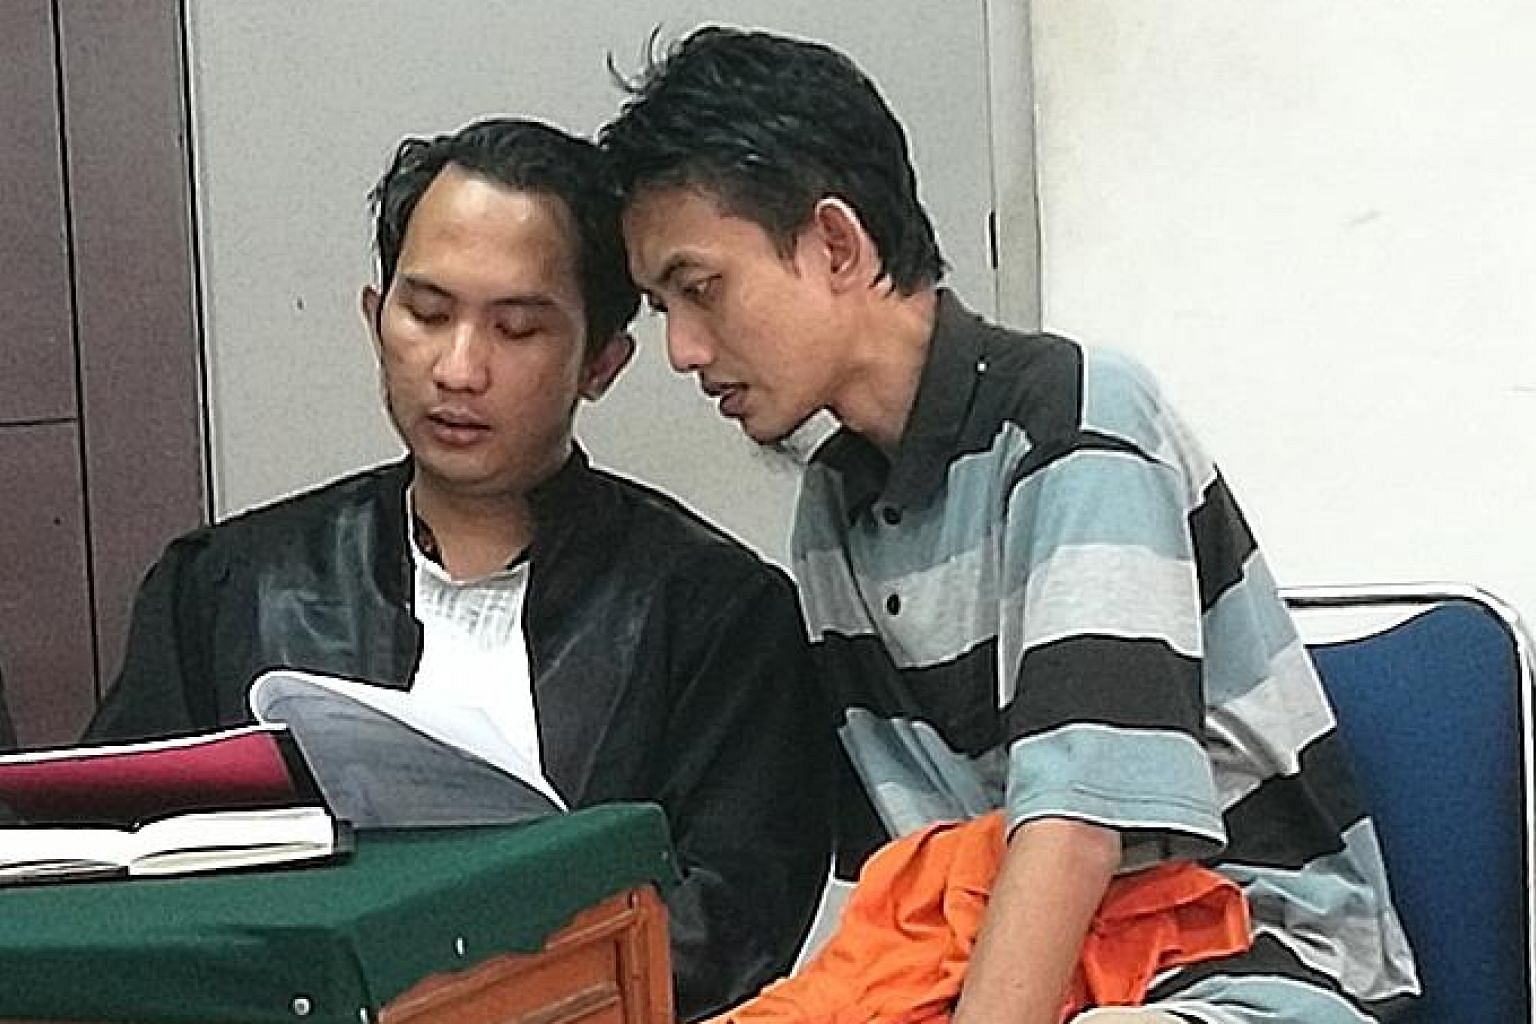 Alleged terrorist cell leader Gigih Rahmat Dewa (in striped shirt) with his lawyer during his trial in a Jakarta courtroom on Saturday.